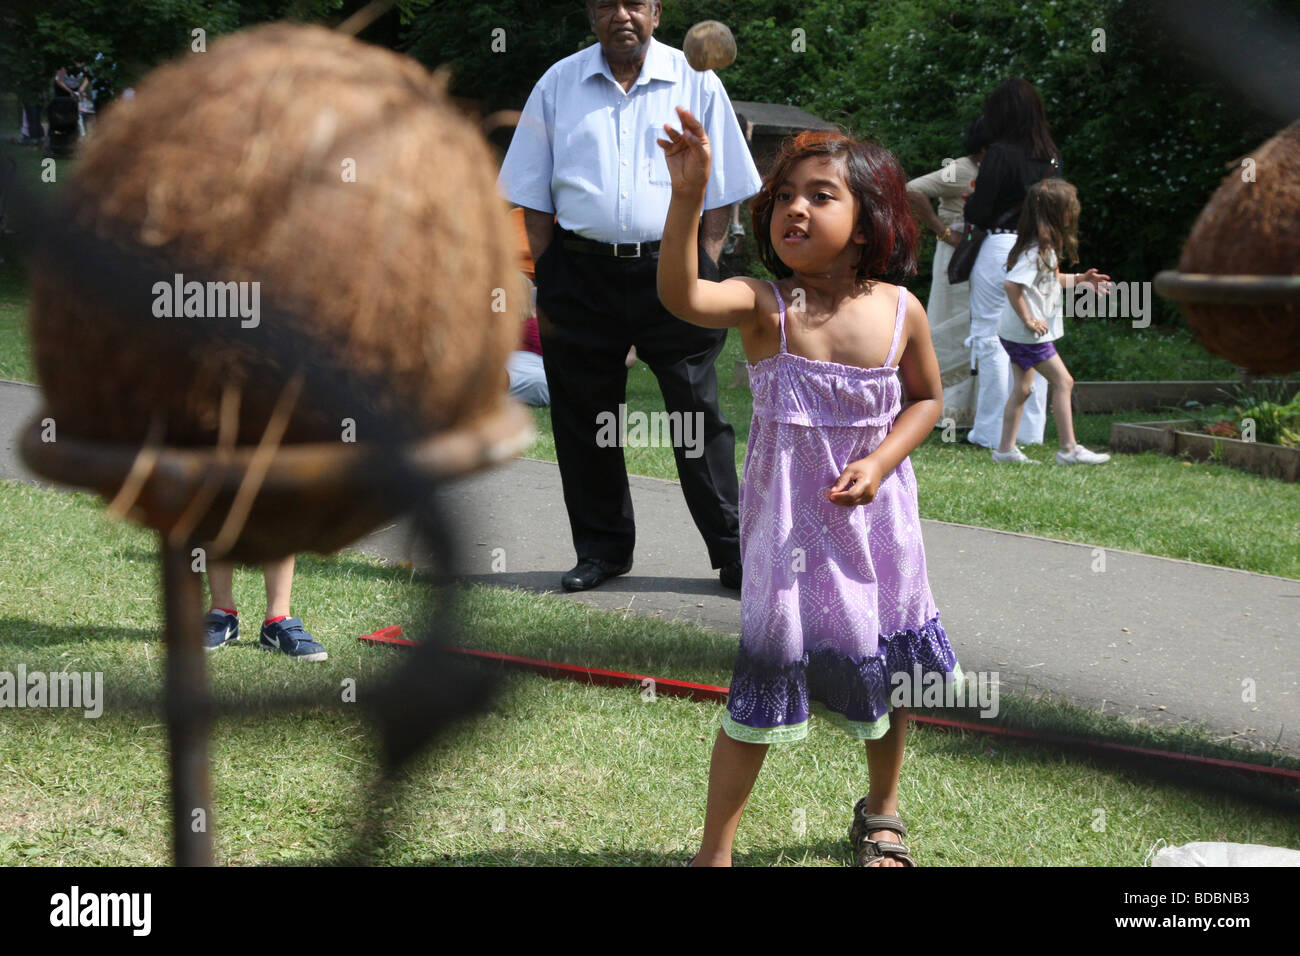 A girl aims to knock coconuts off their perch at a coconut shy at a school fete - Stock Image